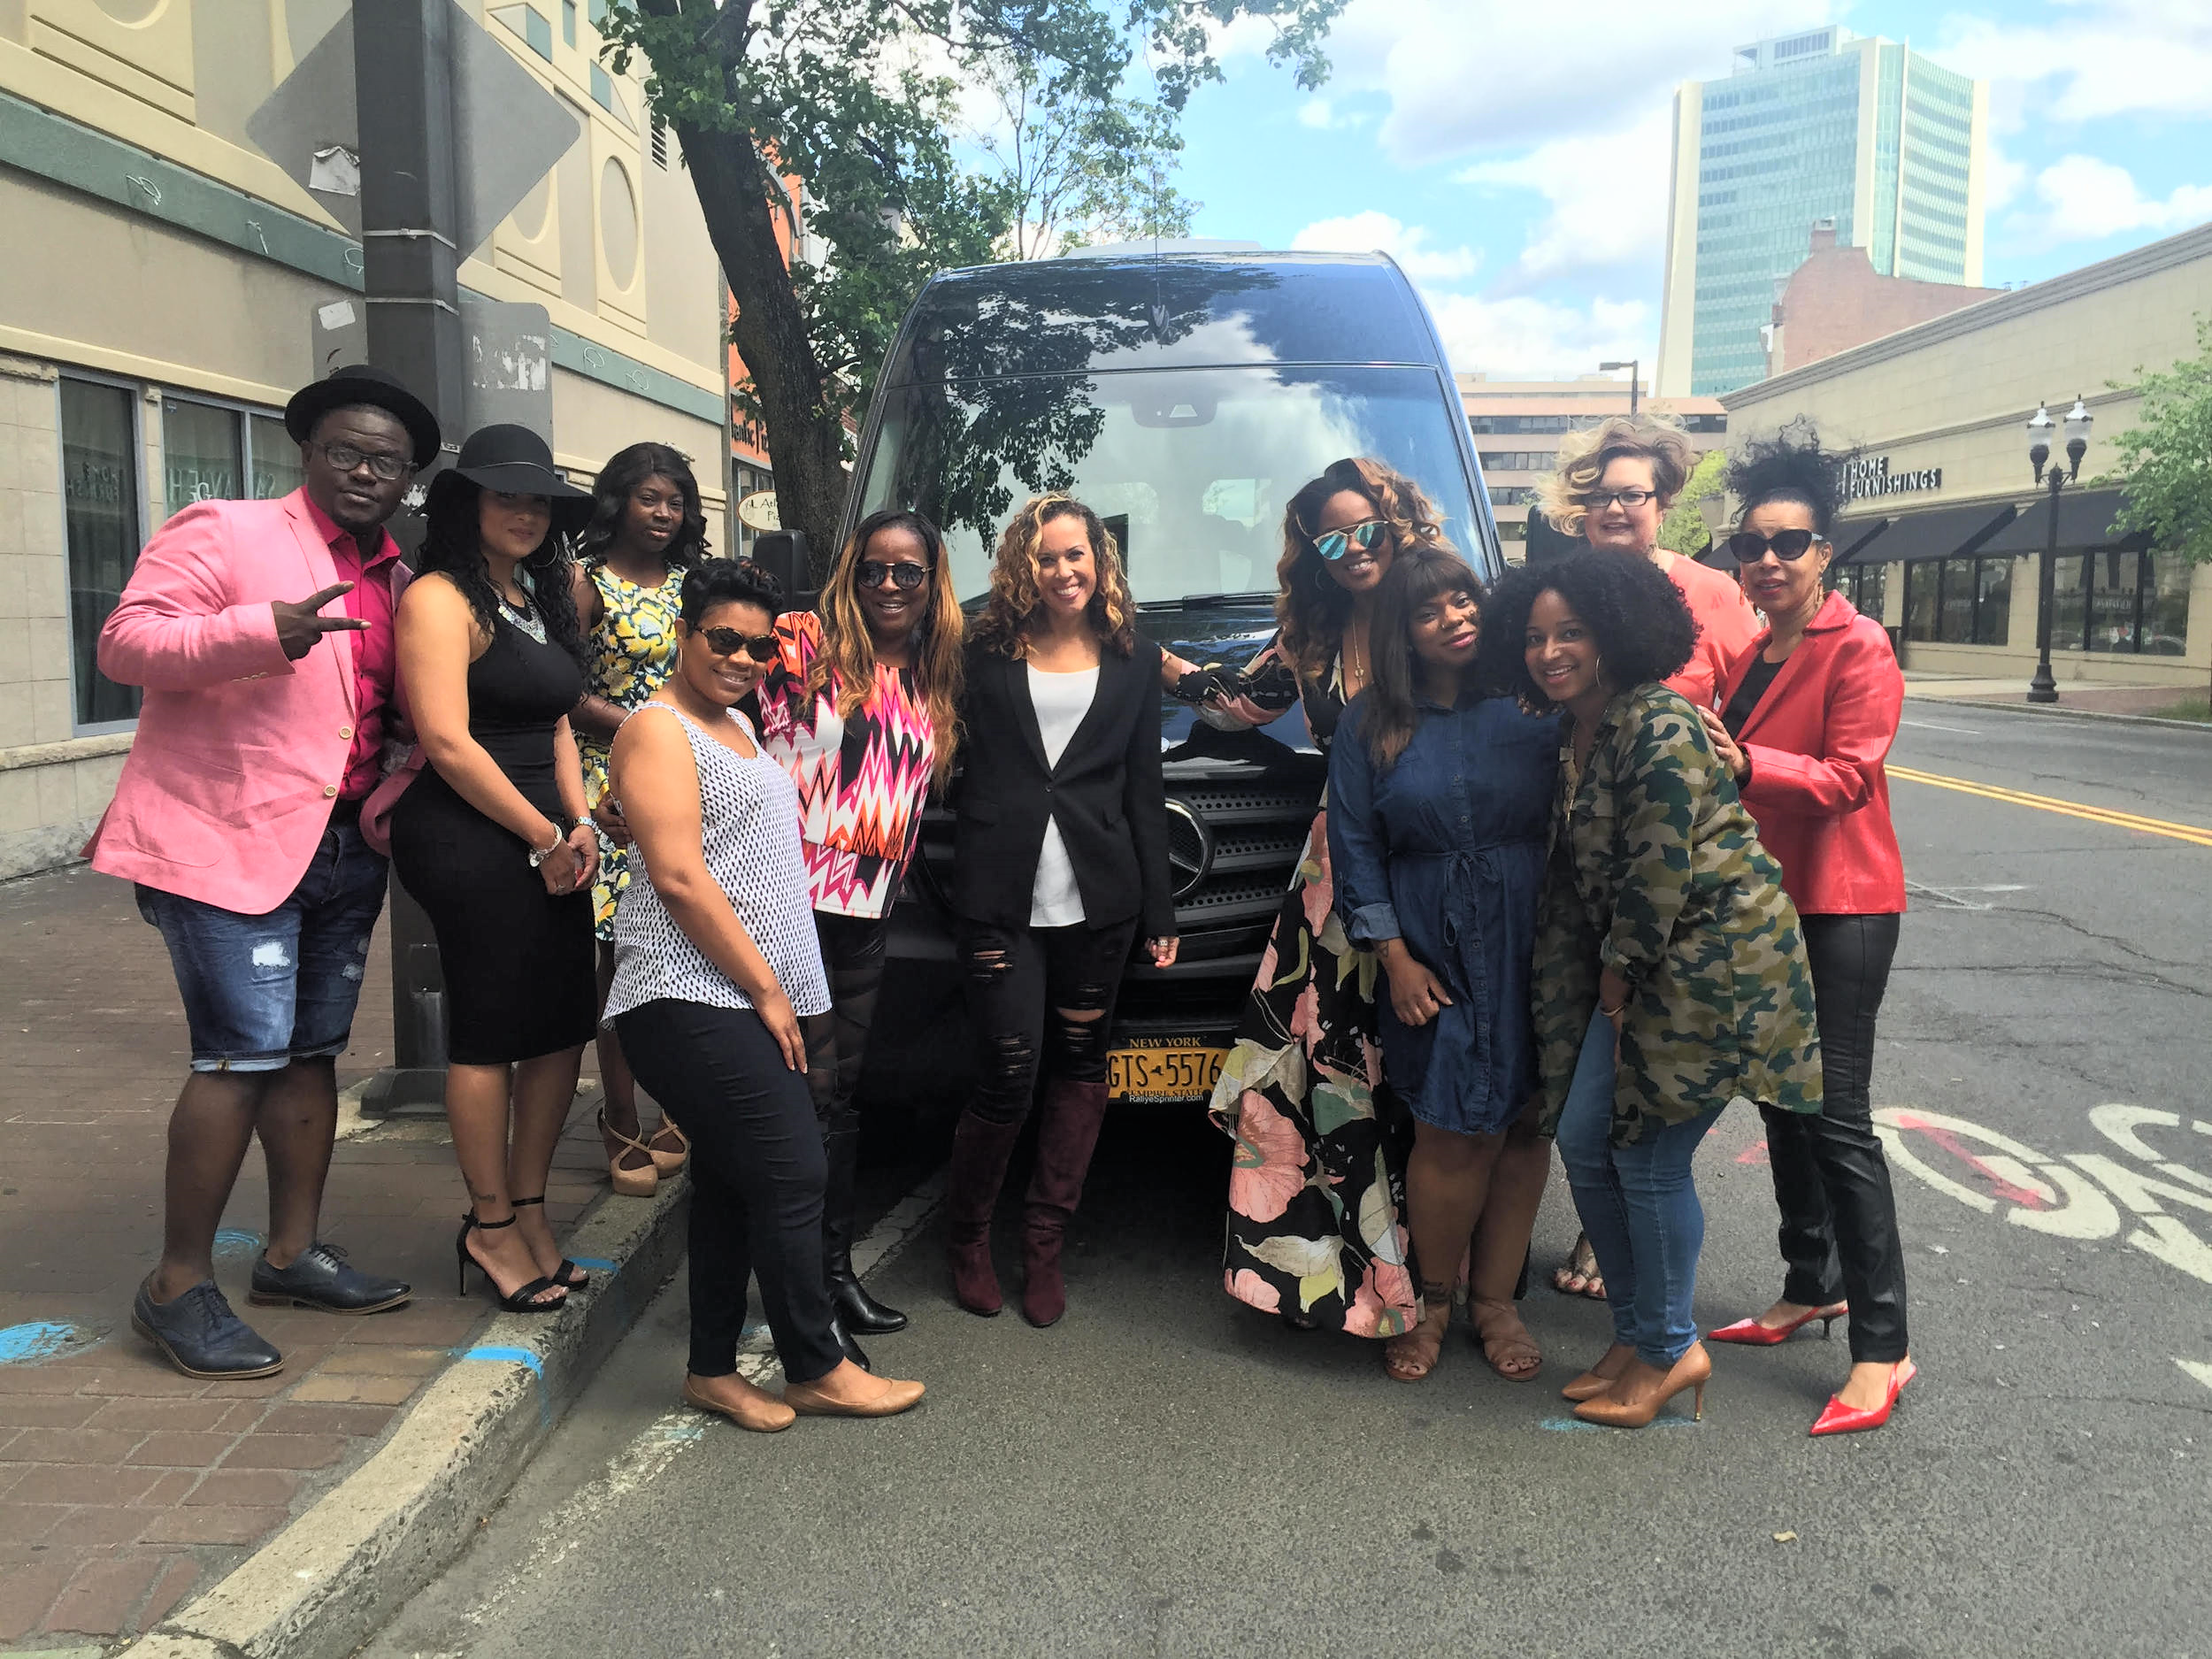 Mercedes Benz Sprinter pics all attendees up from VS for Travel to Manhattan